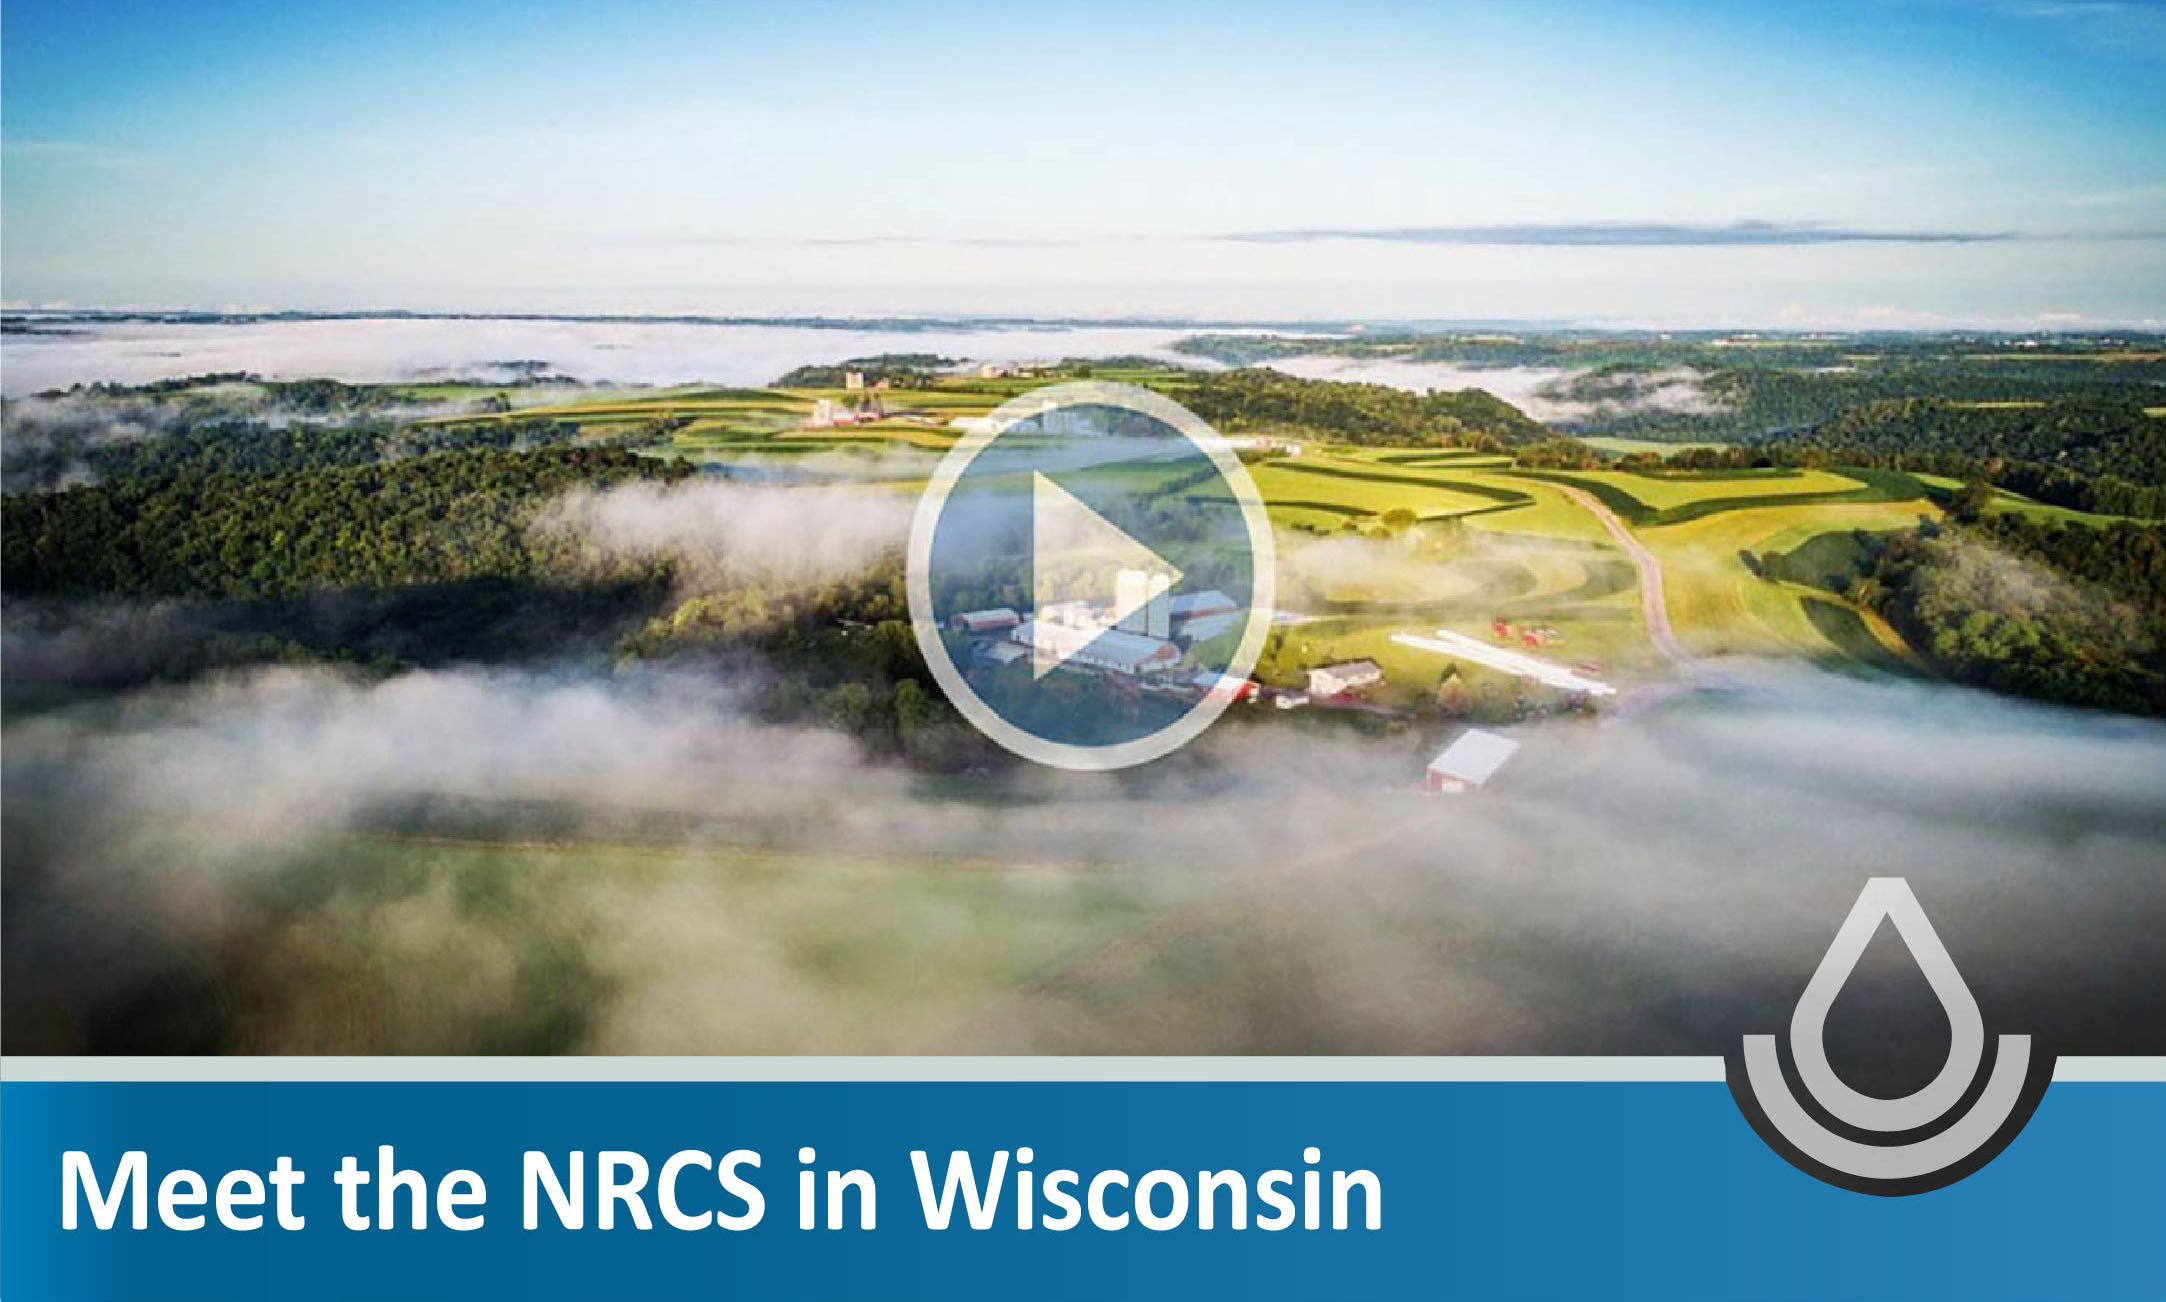 Meet the NRCS in Wisconsin